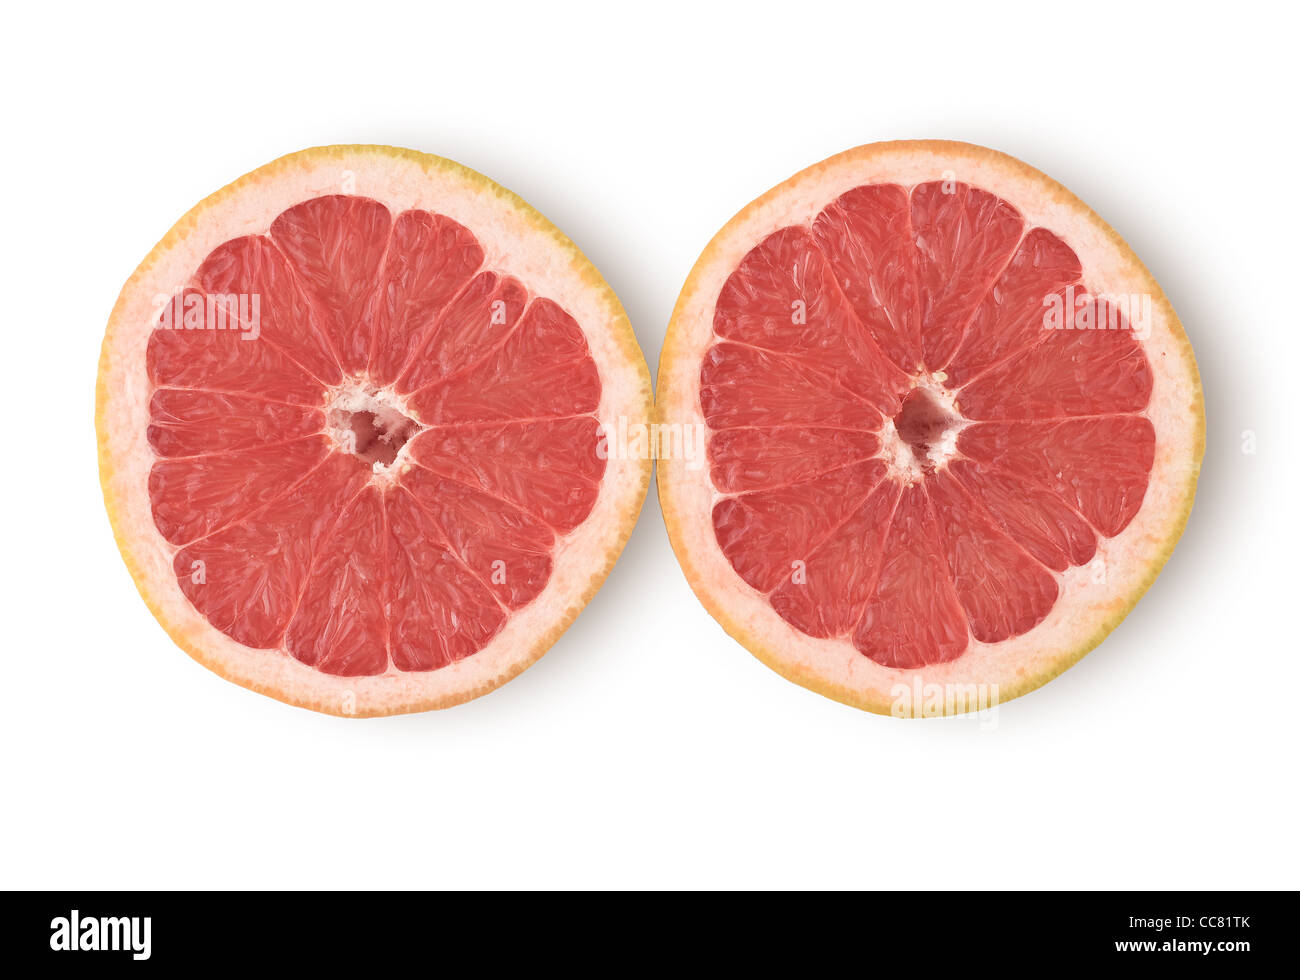 Grapefruit as Healthy and Nutritious Dietary Supplement - Stock Image